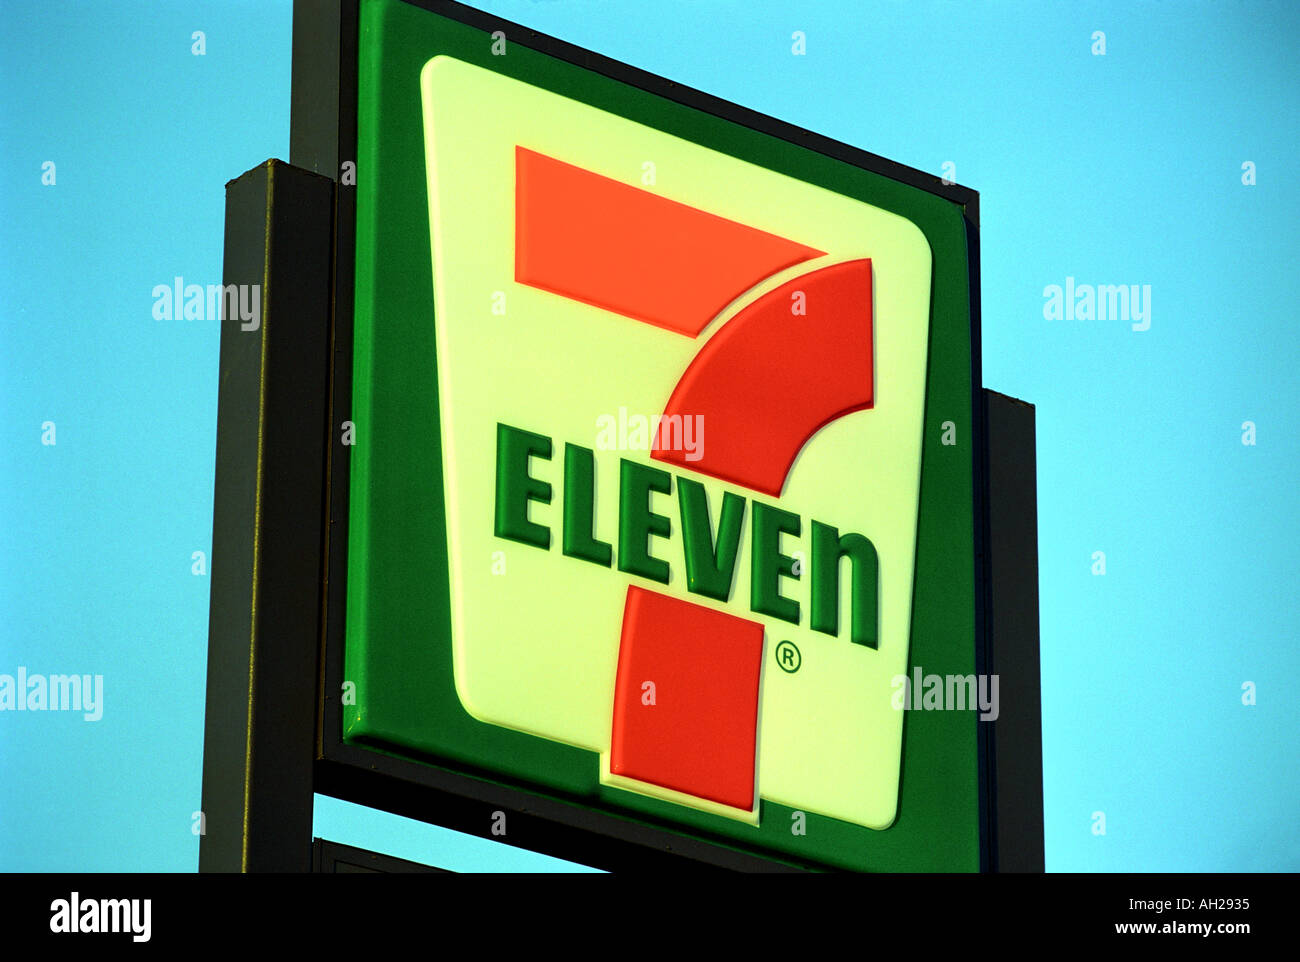 7 Eleven sign, USA - Stock Image